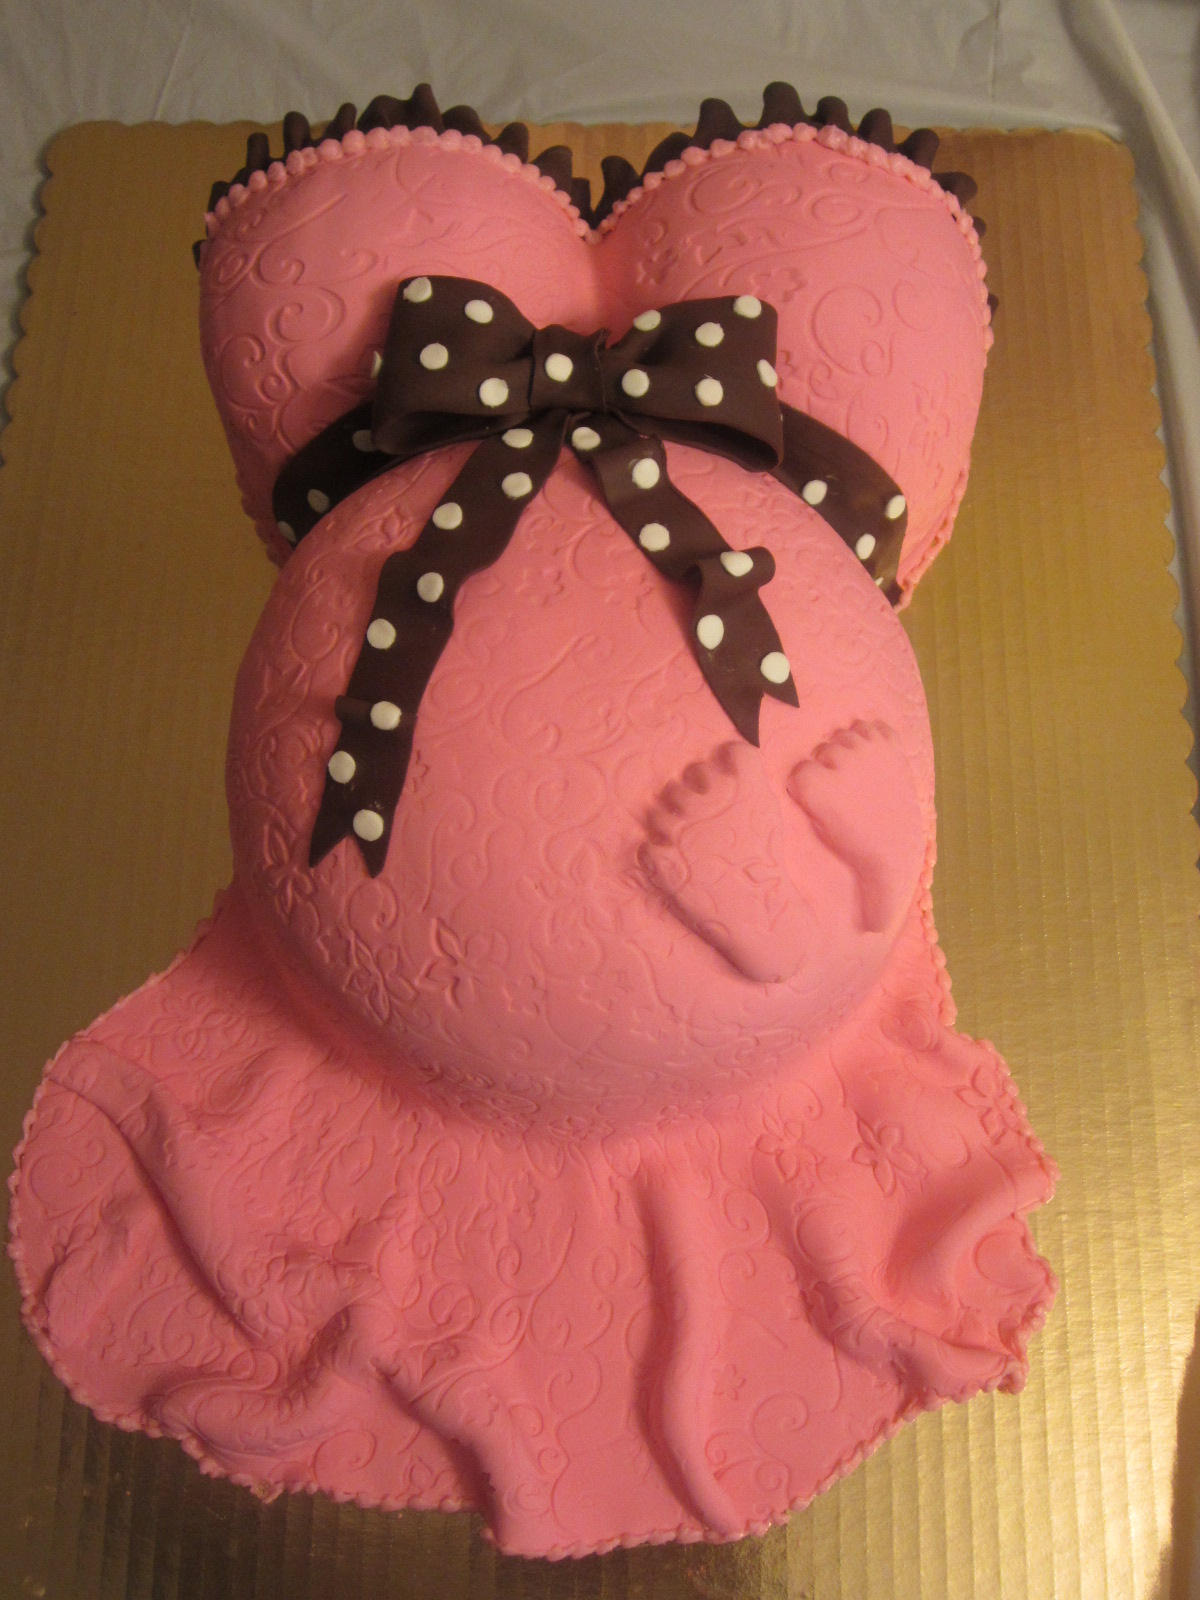 How To Make A Tummy Cake For Baby Shower